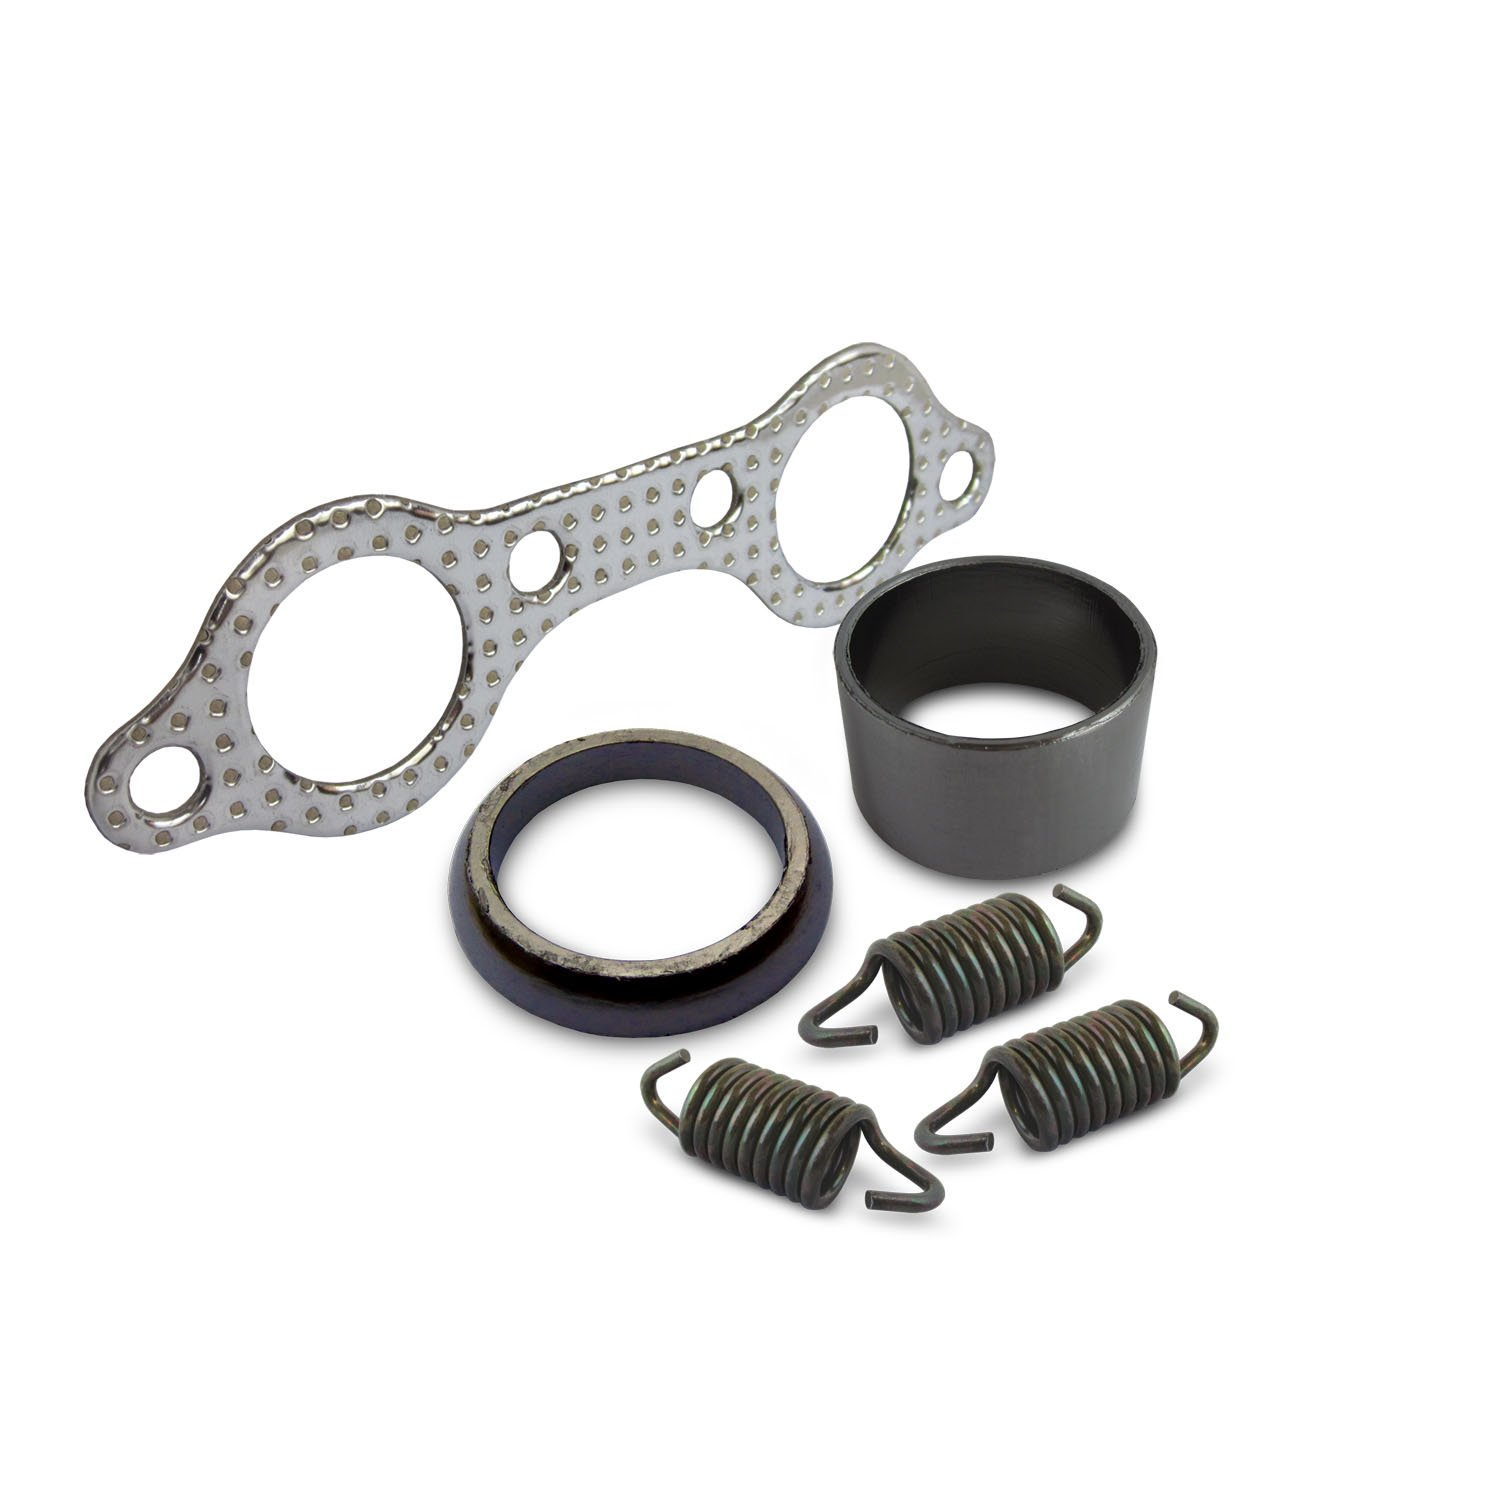 Polaris RZR, RZR-S, RZR-4 800 (2009-14) Exhaust Gasket and Spring Rebuild Kit Quad Logic